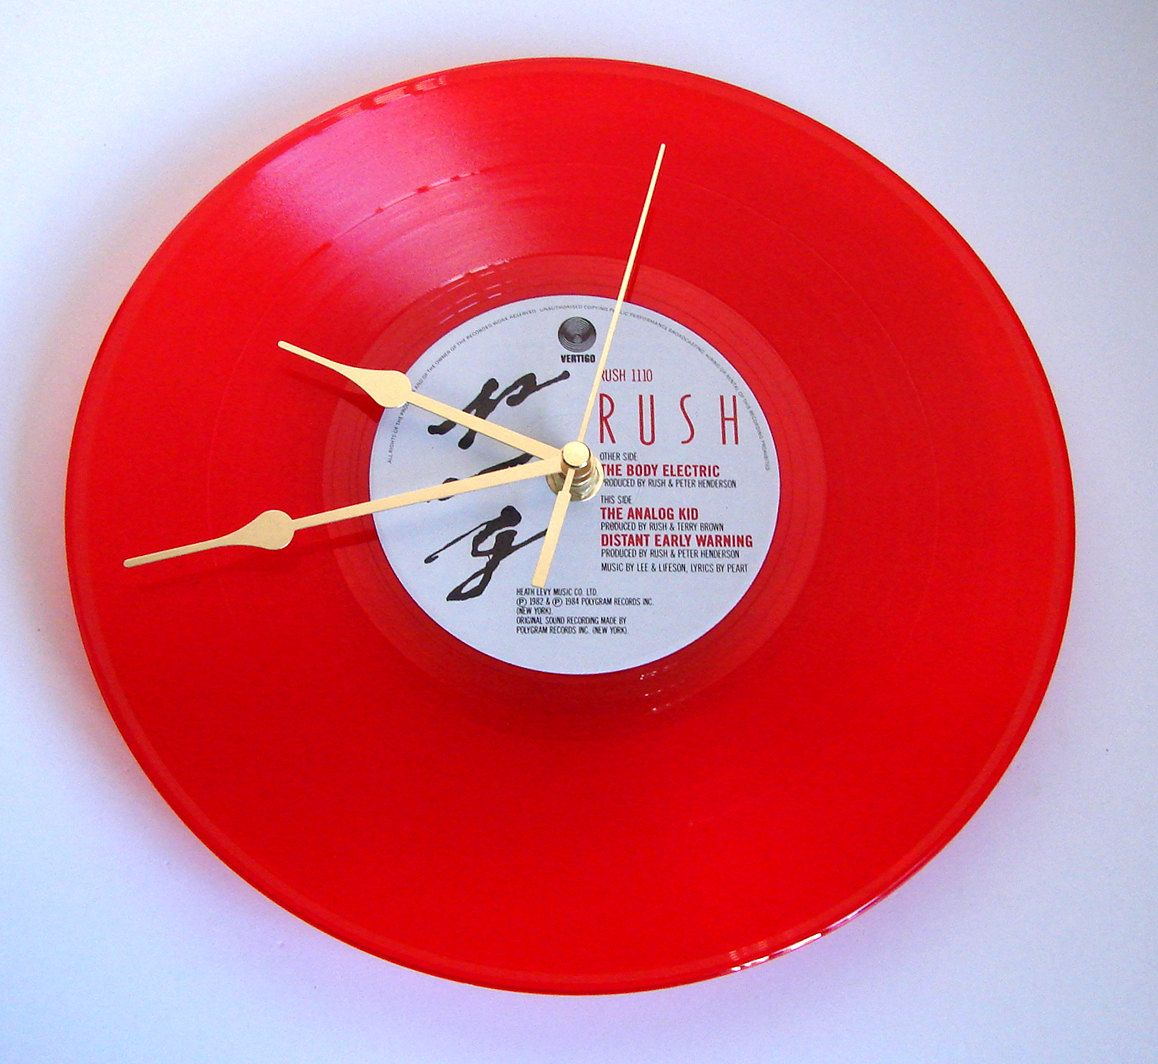 Rush Vinyl Record Clock Made From Original Recycled 10 Inch Red Coloured Vinyl Great Gift For Fans Guys Girls Pro Vinyl Record Clock Record Clock Vinyl Records